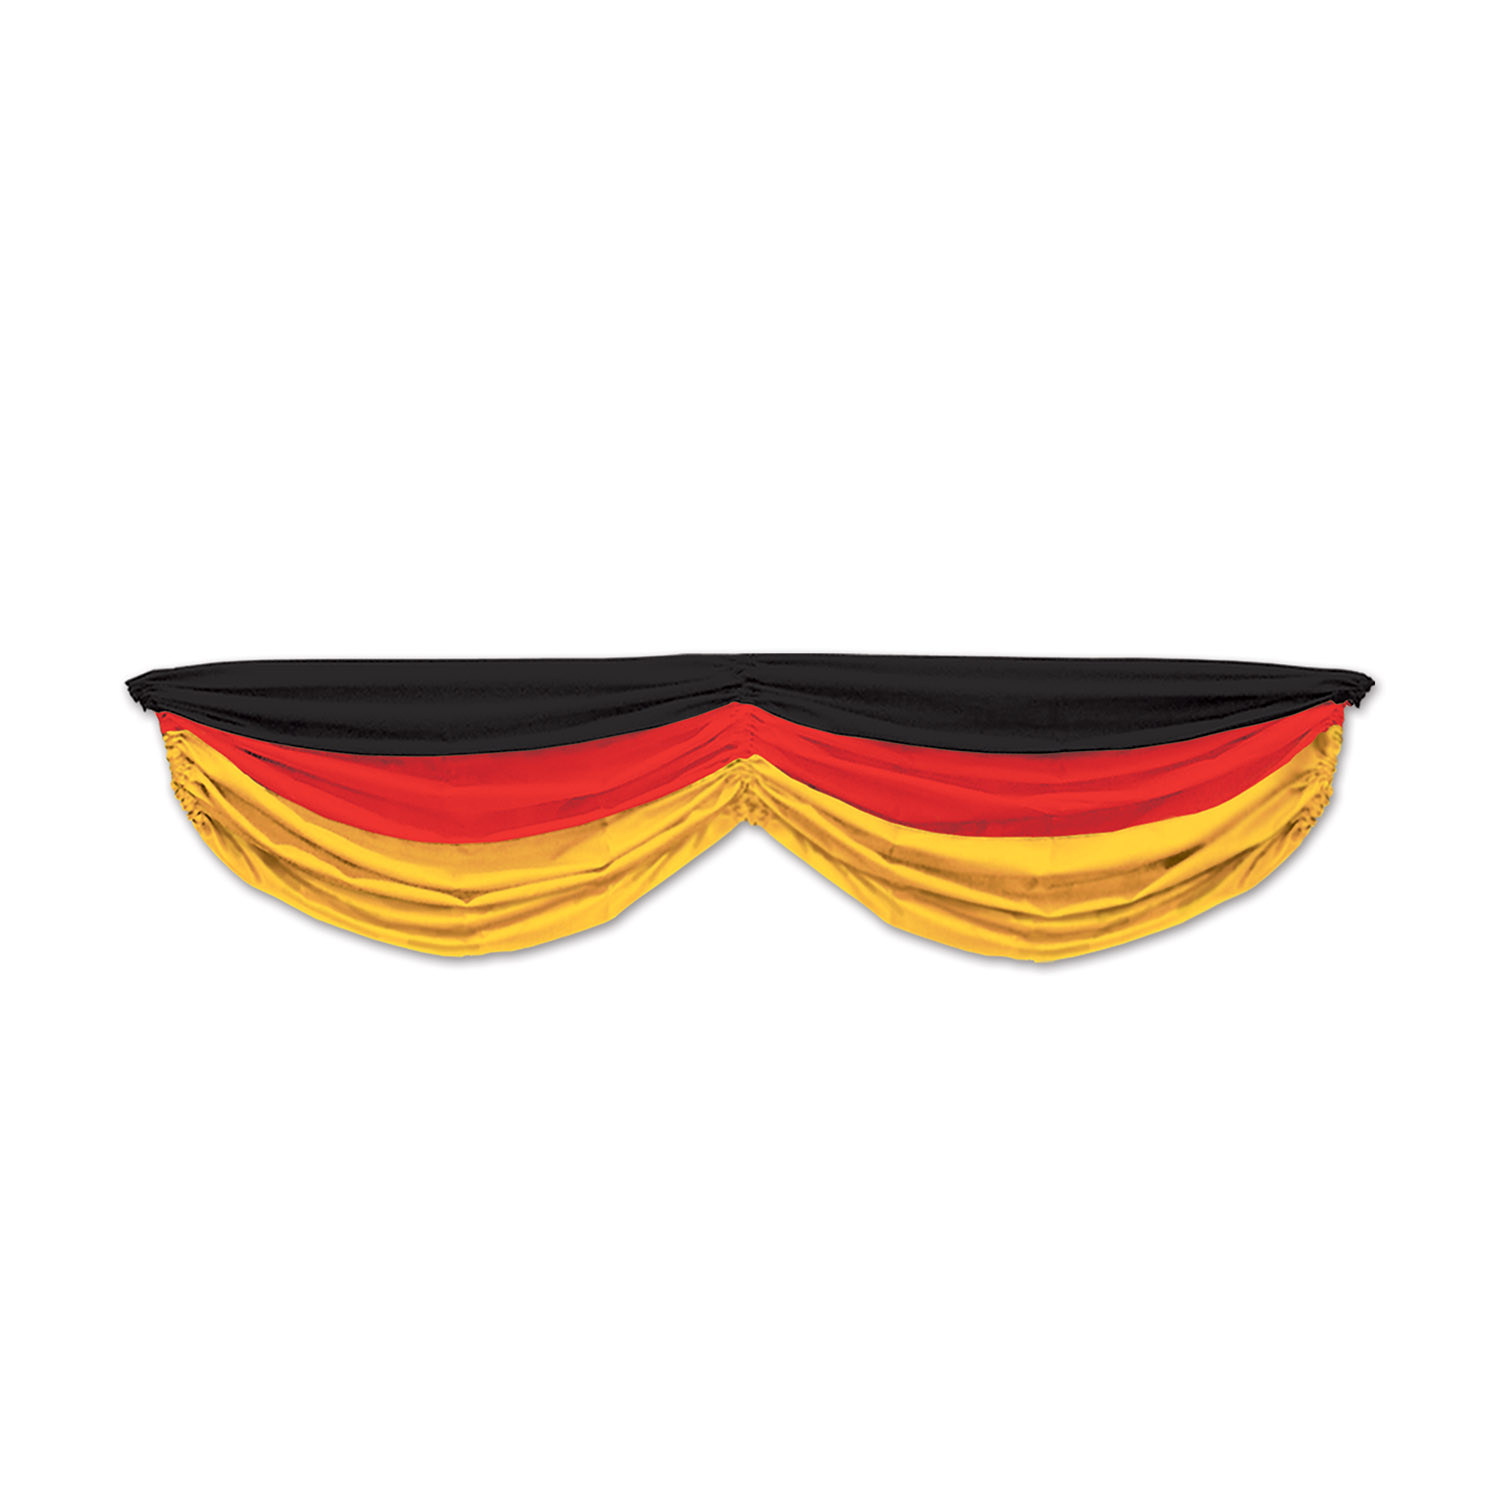 German Fabric Bunting (Pack of 6) German, Oktoberfest, Beer, Red, Yellow, Black, Fabric Bunting, Indoor/outdoor, Cheap, Decor, Party goods, Wholesale party supplies, Inexpensive party favors, Bulk packs, Beads, Balloons, International